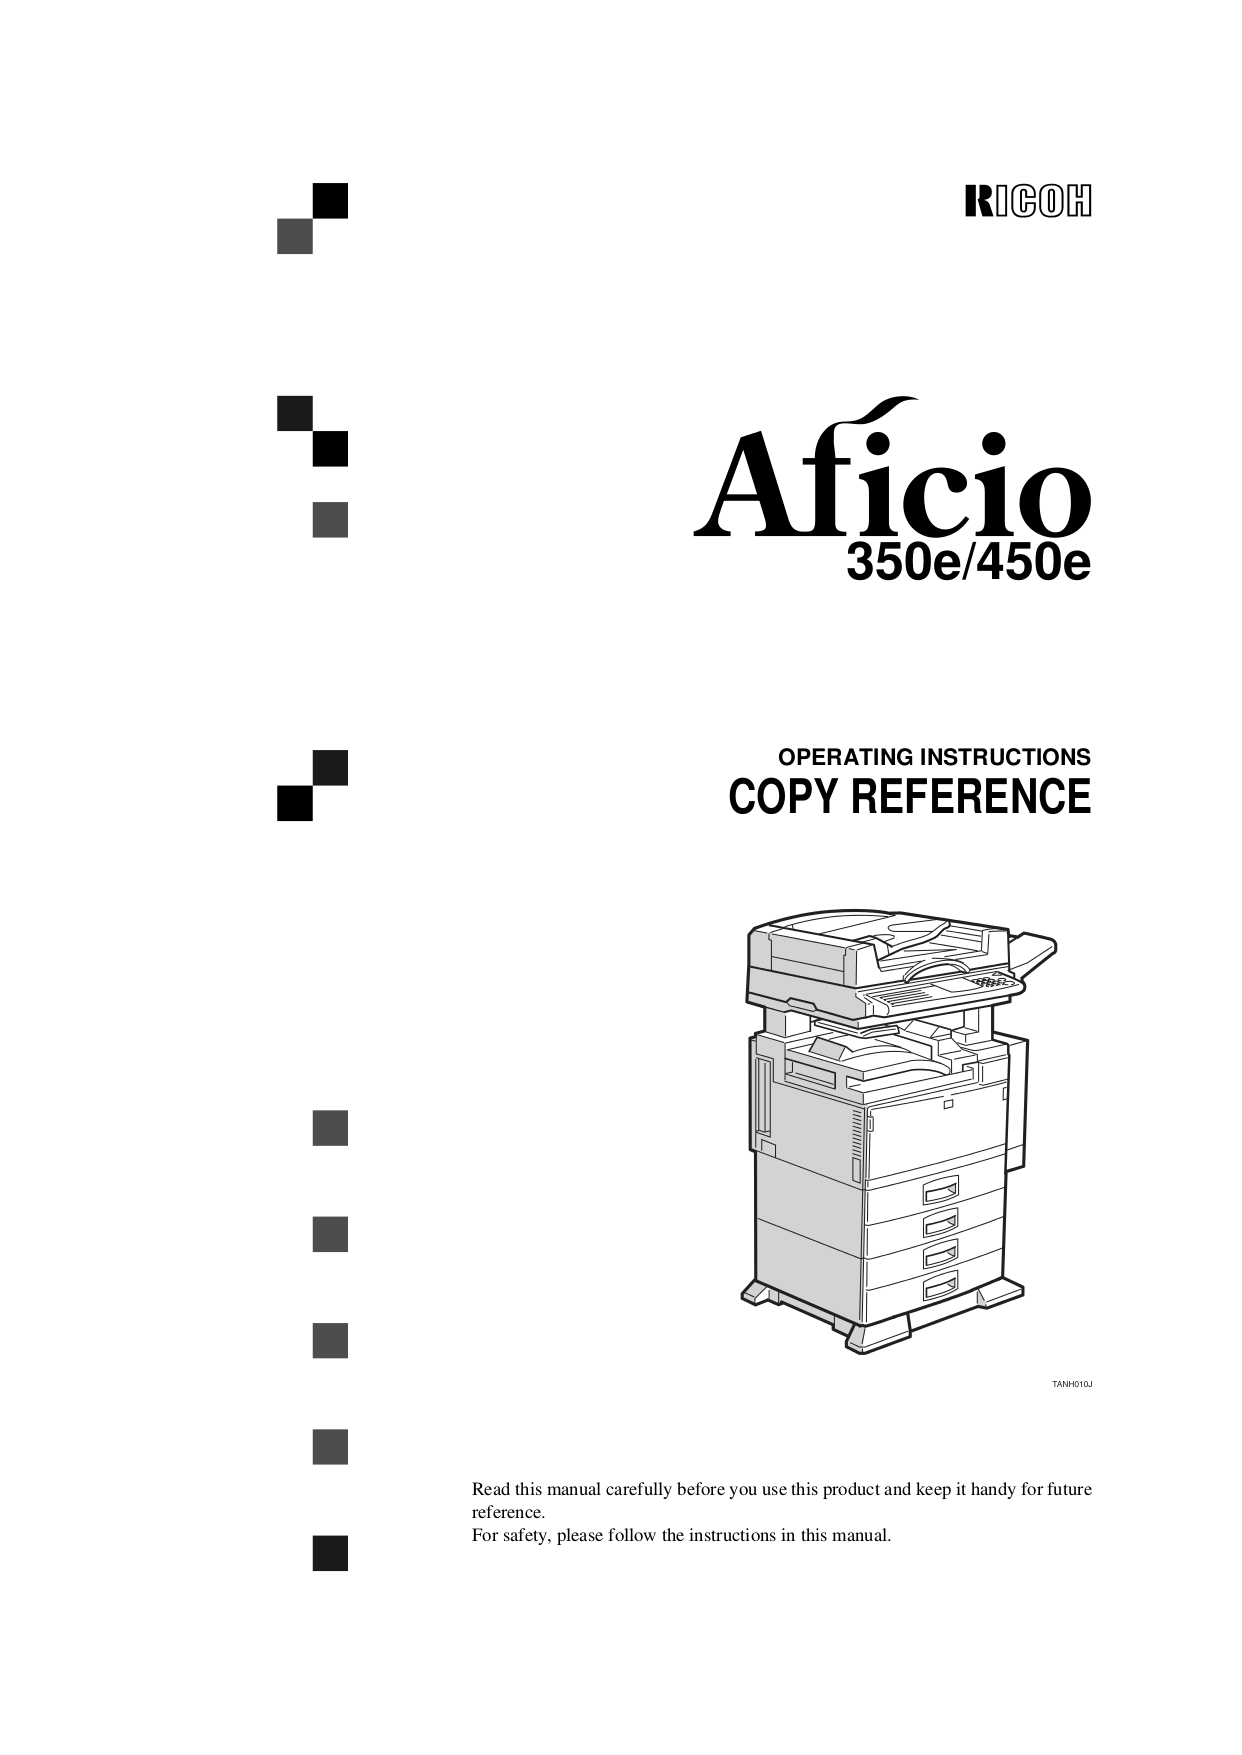 Download free pdf for Ricoh Aficio 450e Multifunction